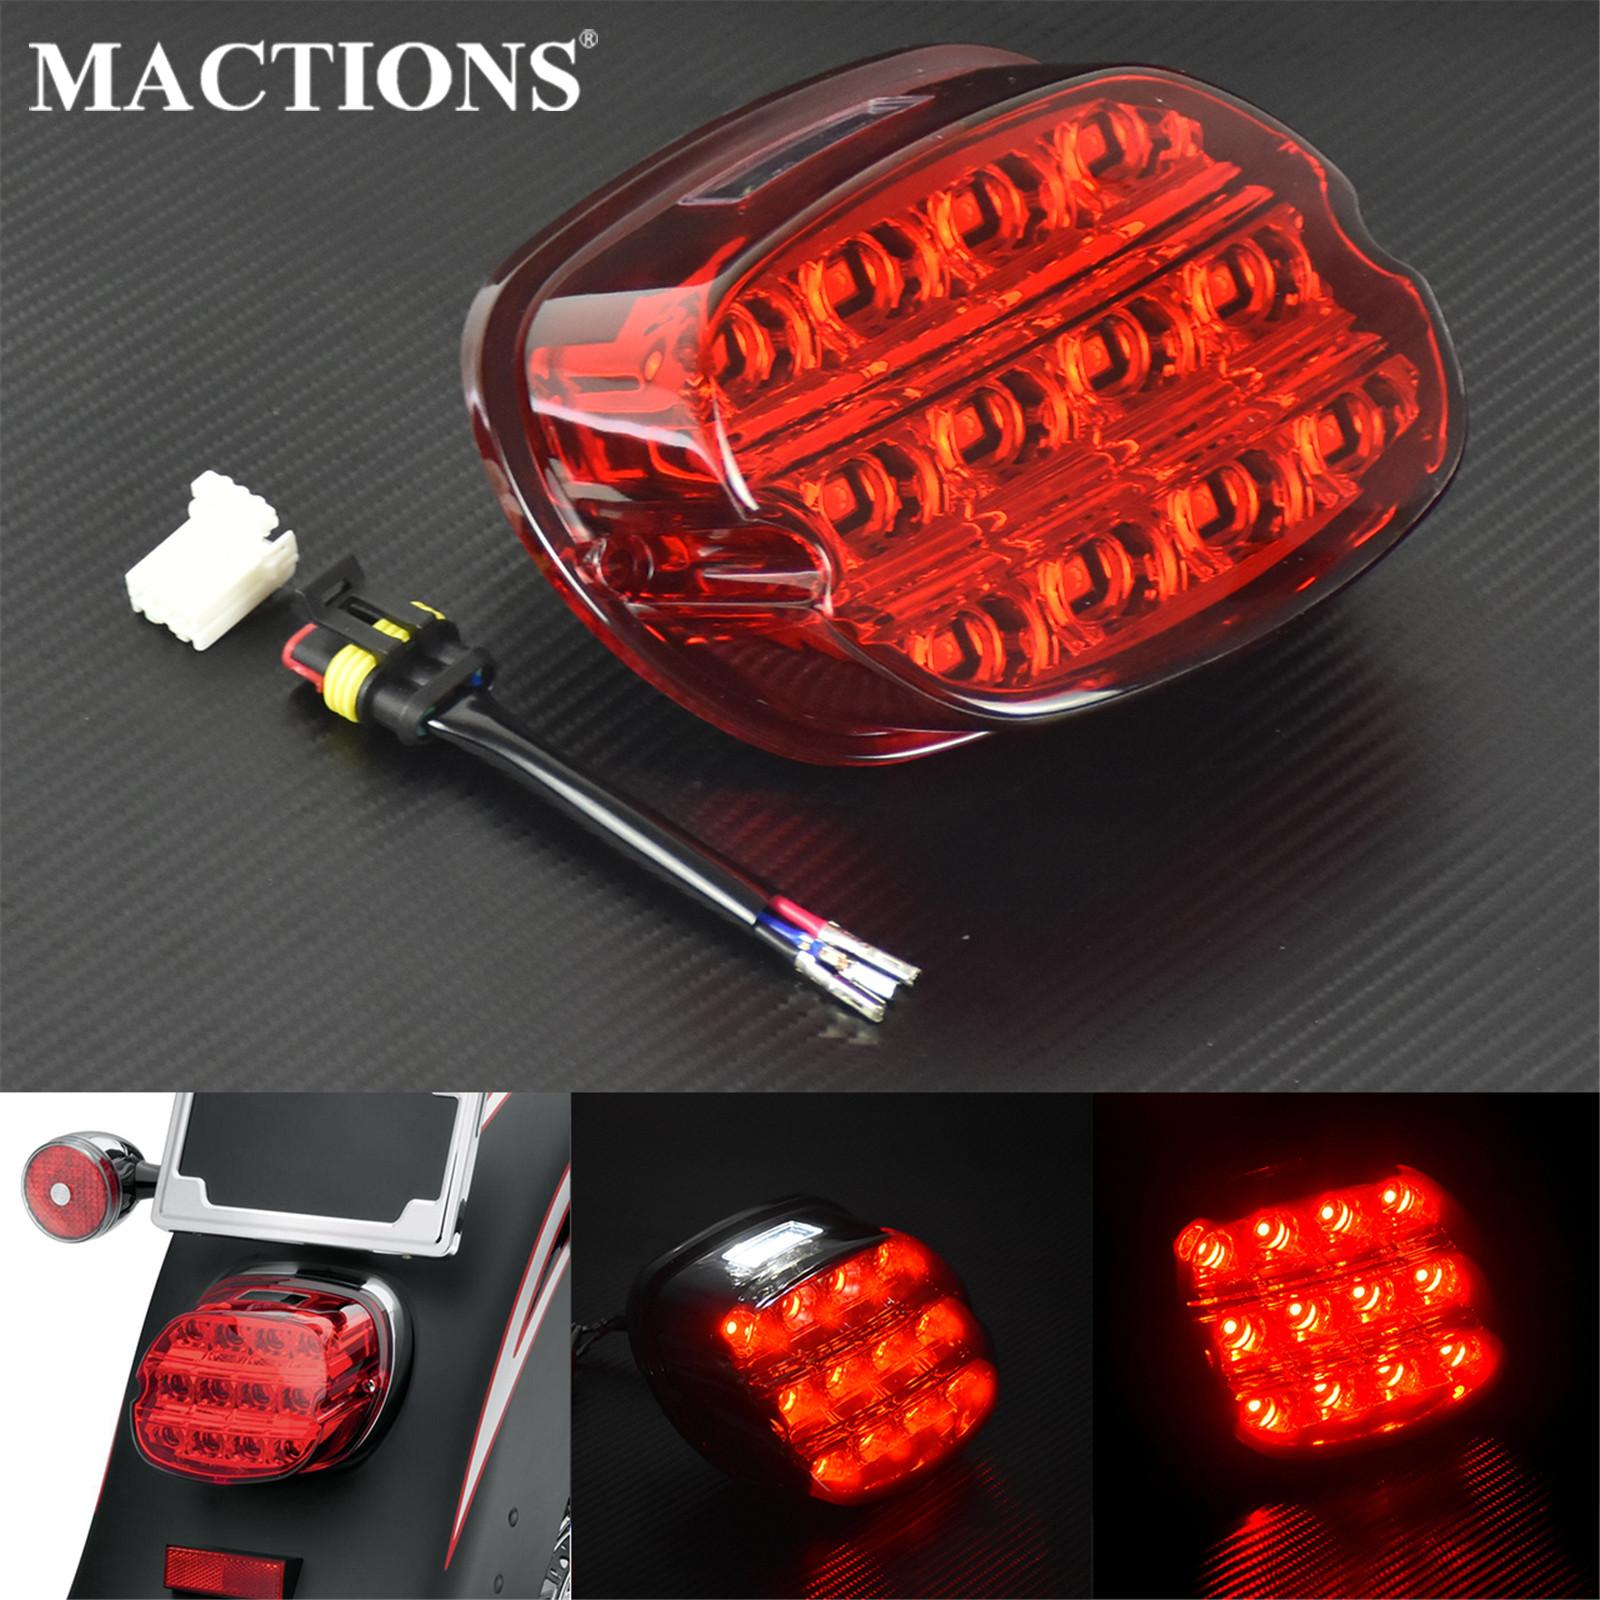 Motorcycle Red LED Brake Tail Light License Plate Rear Lamp For Harley Dyna Fat Boy Softail Sportster XL Road King Electra Glide